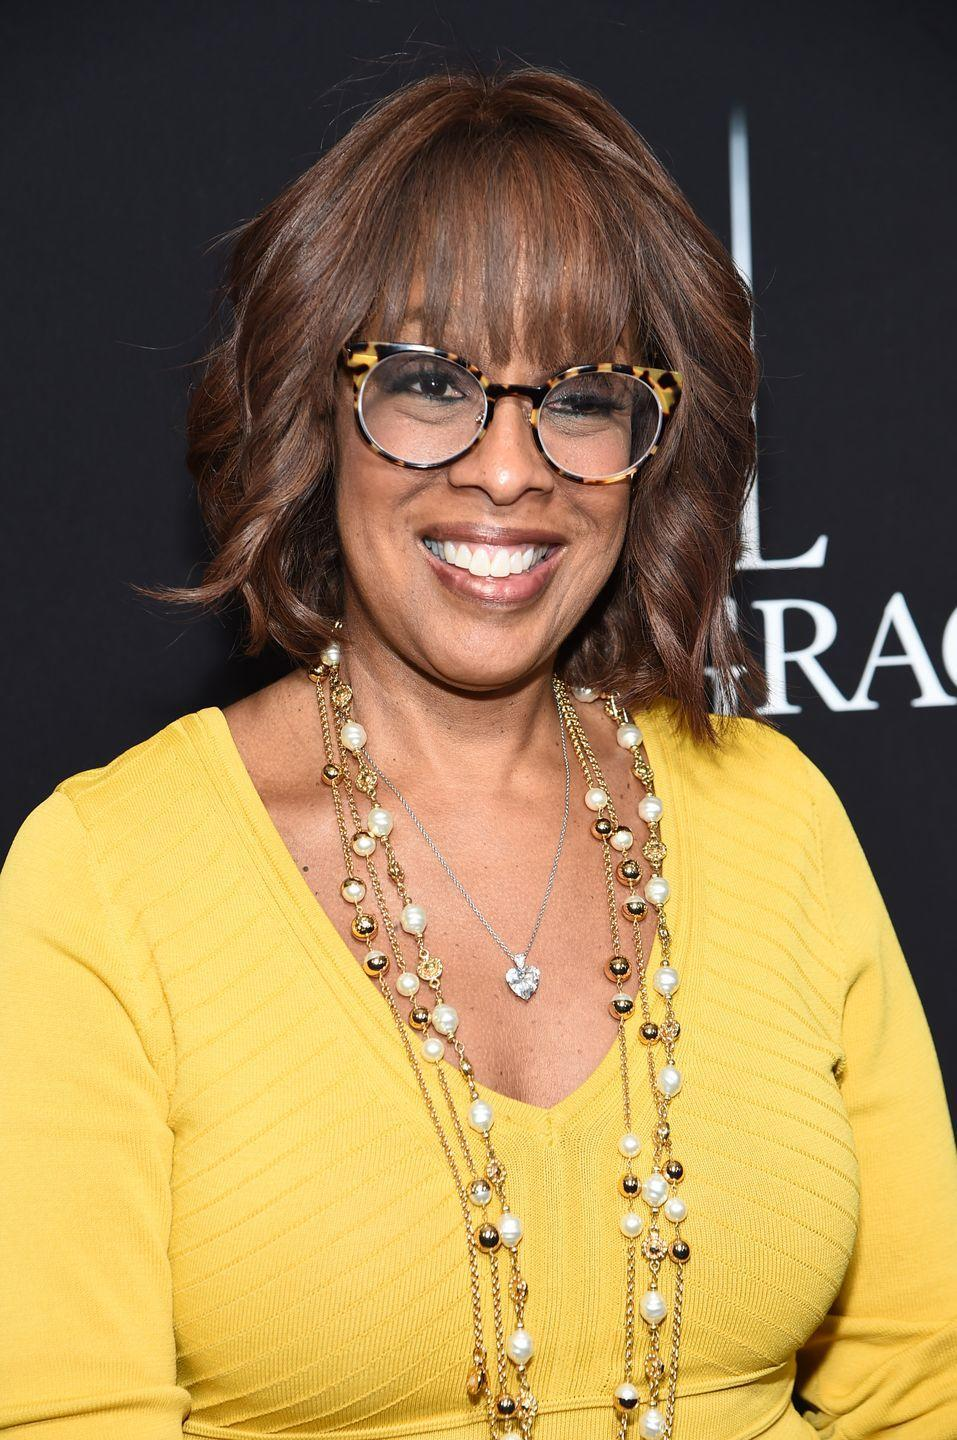 "<p>The casual everyday-bob gets a color update. Elevate a cut like<strong> Gayle King</strong>'s by incorporating two-toned highlights to your base and keeping your strands sleek.</p><p><strong>RELATED: </strong><a href=""https://www.goodhousekeeping.com/beauty/hair/g3027/best-hair-color-trends/"" rel=""nofollow noopener"" target=""_blank"" data-ylk=""slk:The 50 Best Hair Color Trends for 2020"" class=""link rapid-noclick-resp"">The 50 Best Hair Color Trends for 2020</a></p>"